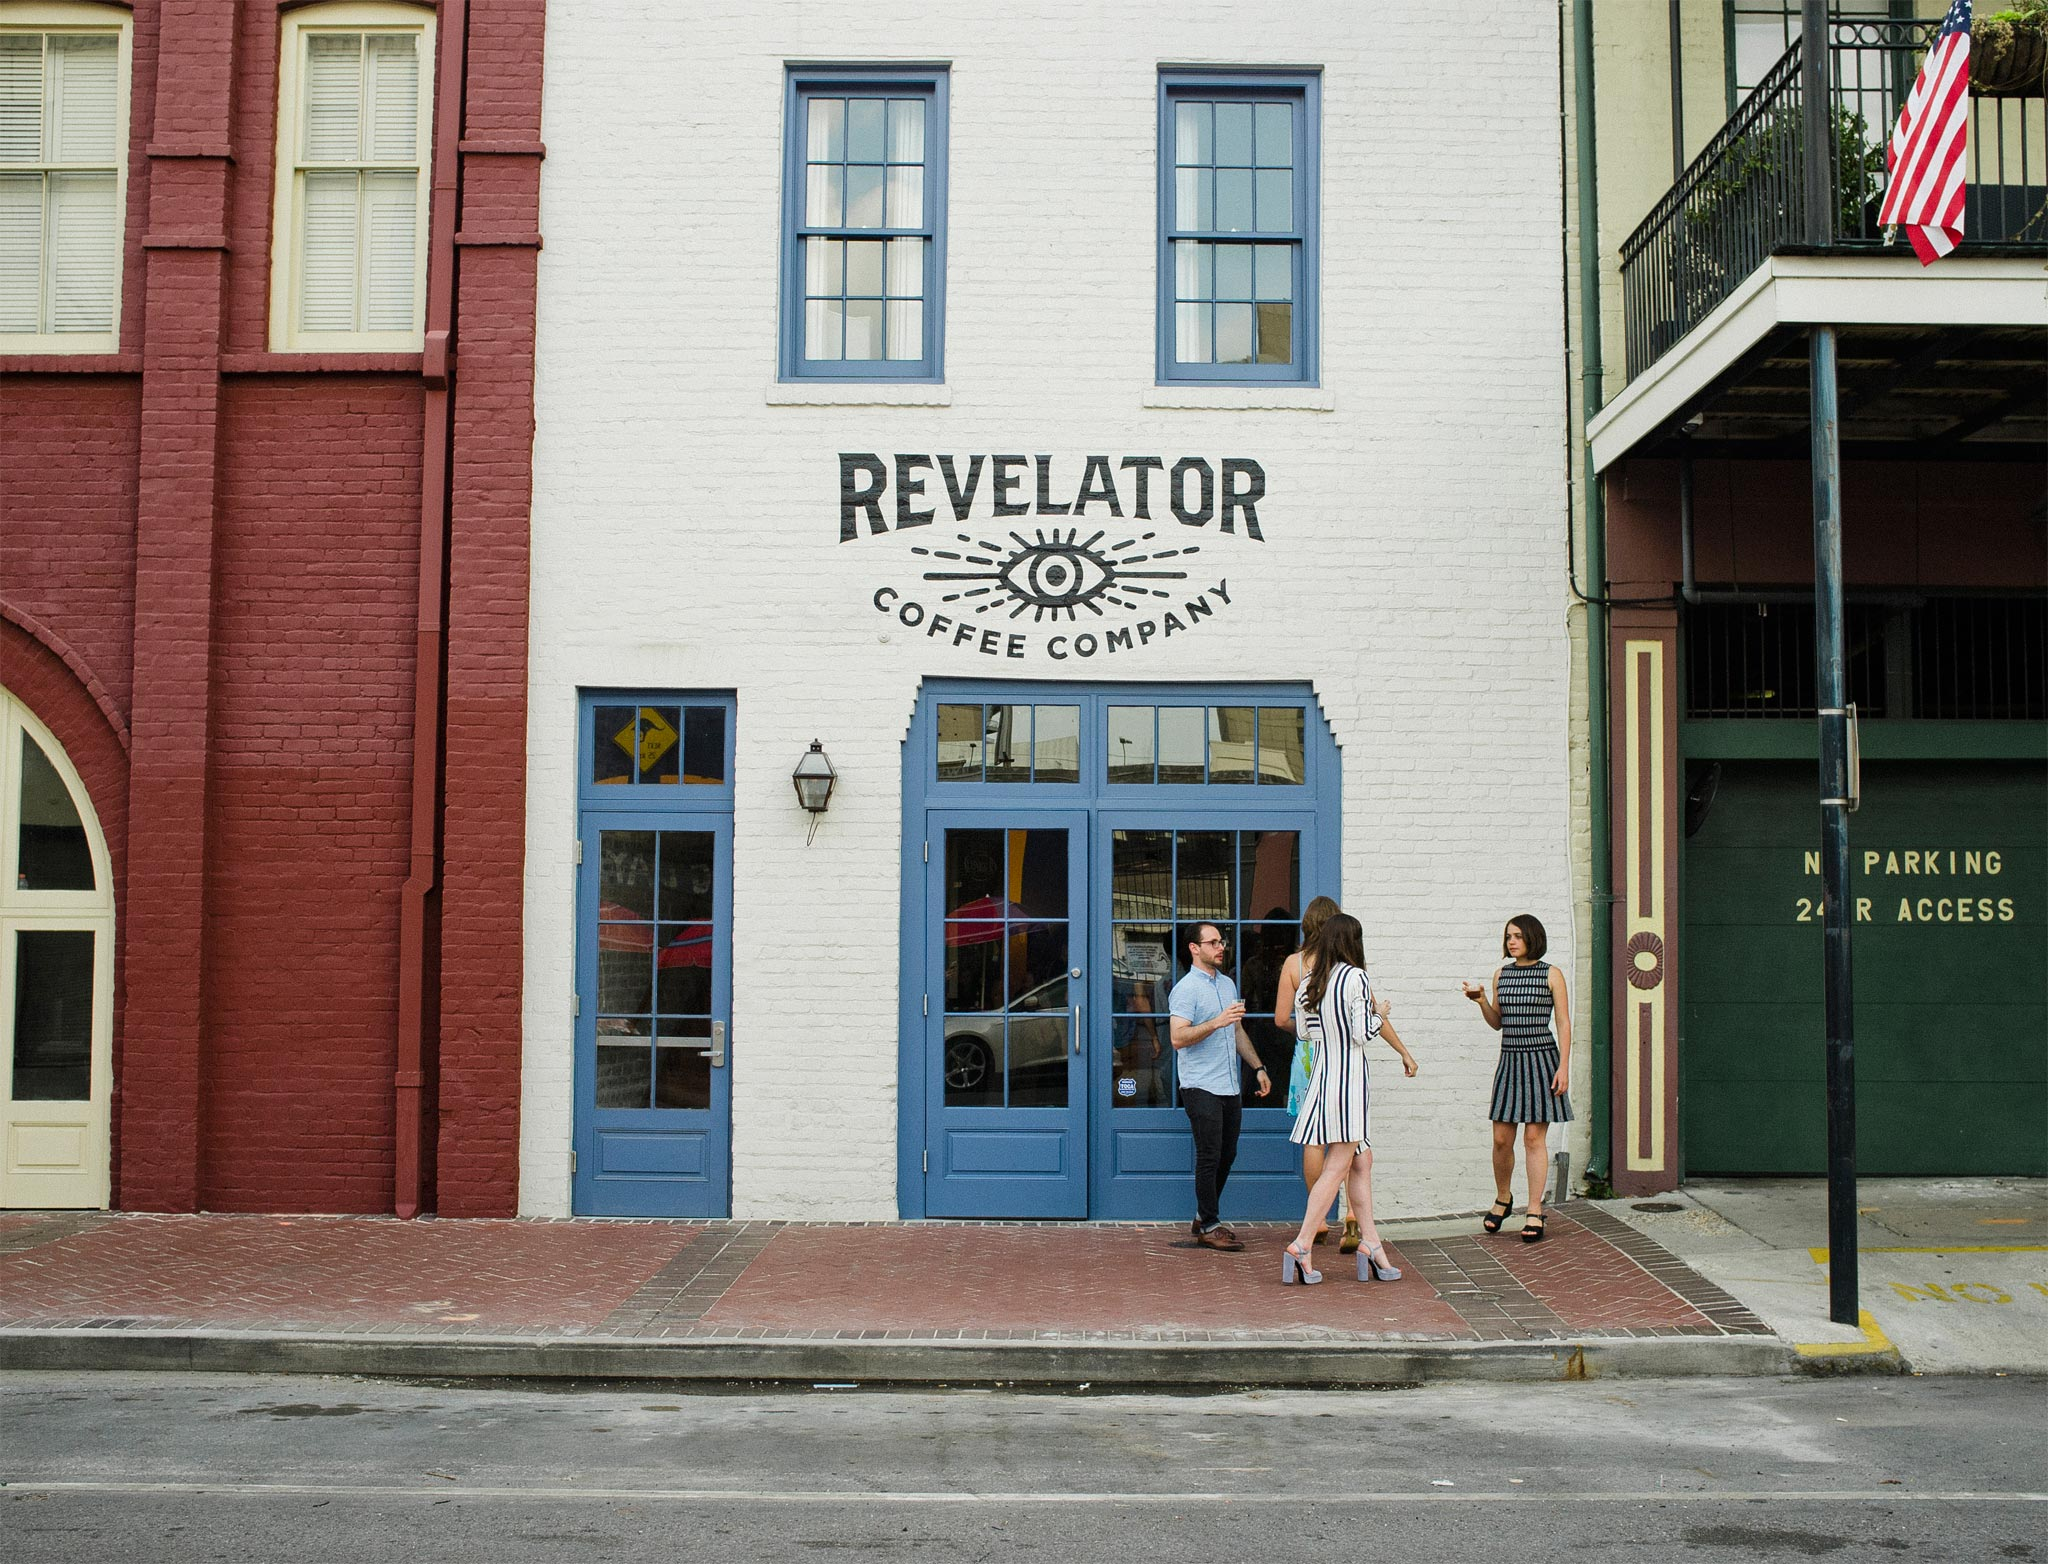 Revelator New Orleans stylish coffee bar street view of signage